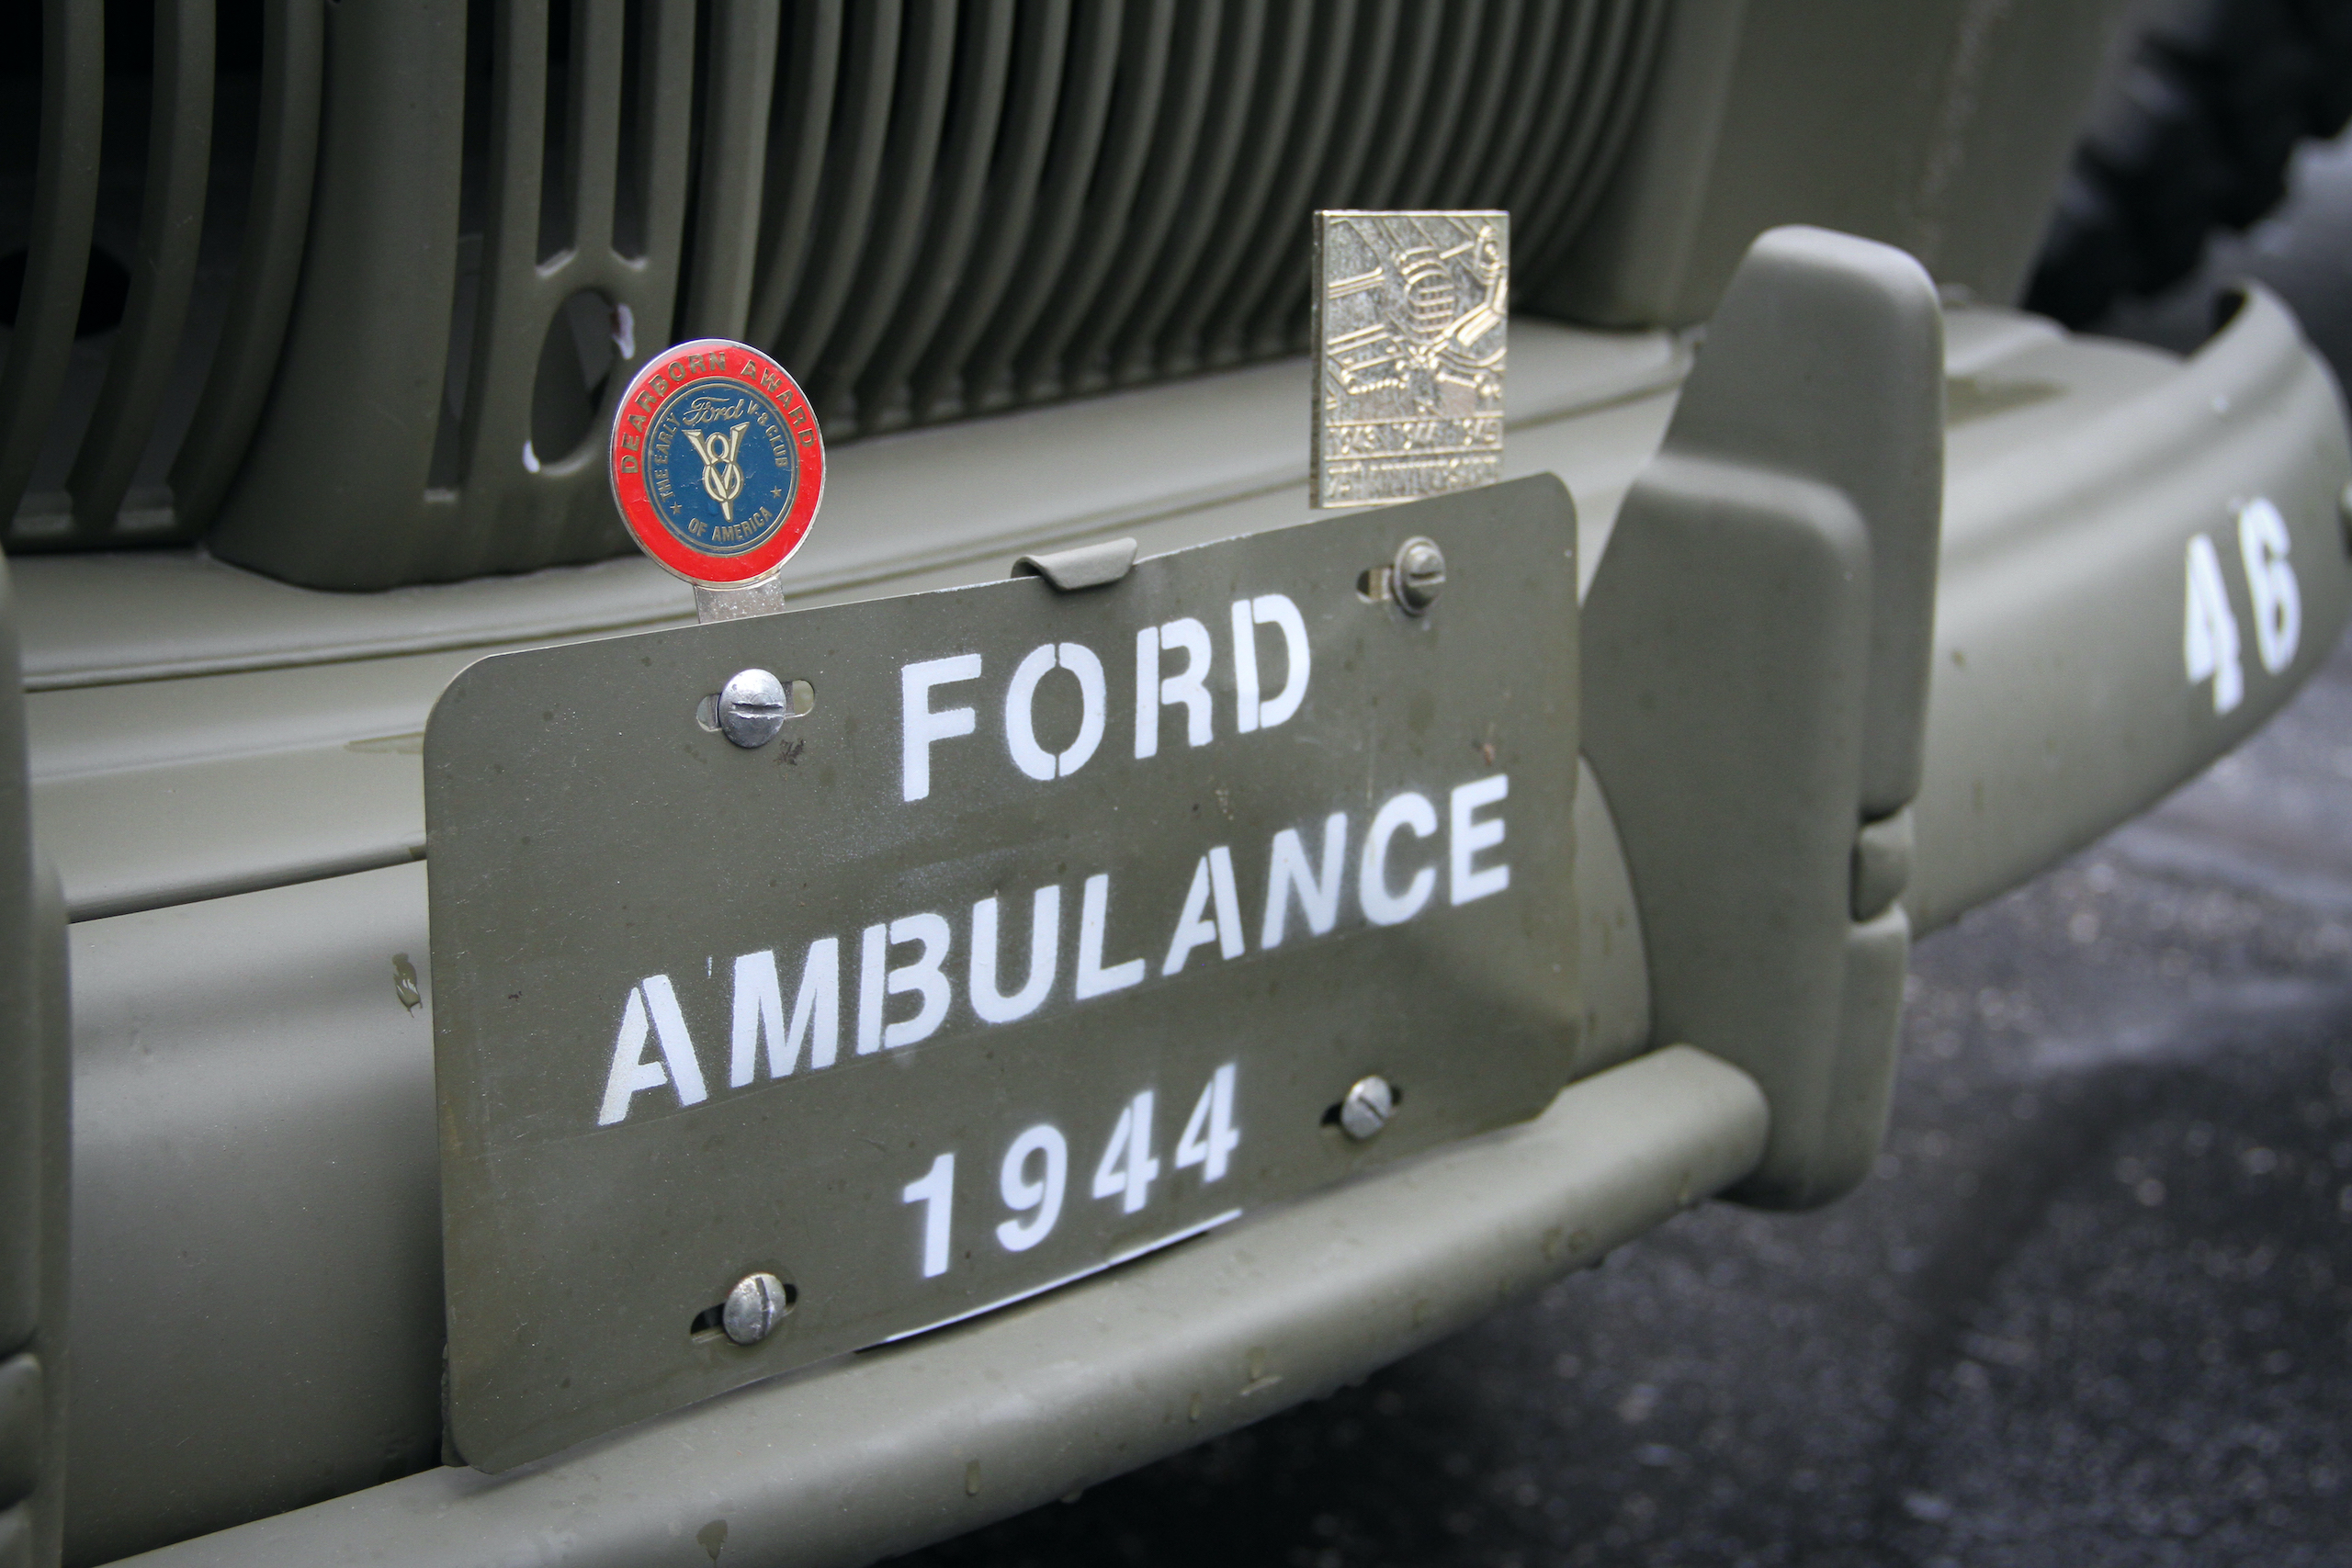 Military vehicle convoy for ambulance front plate